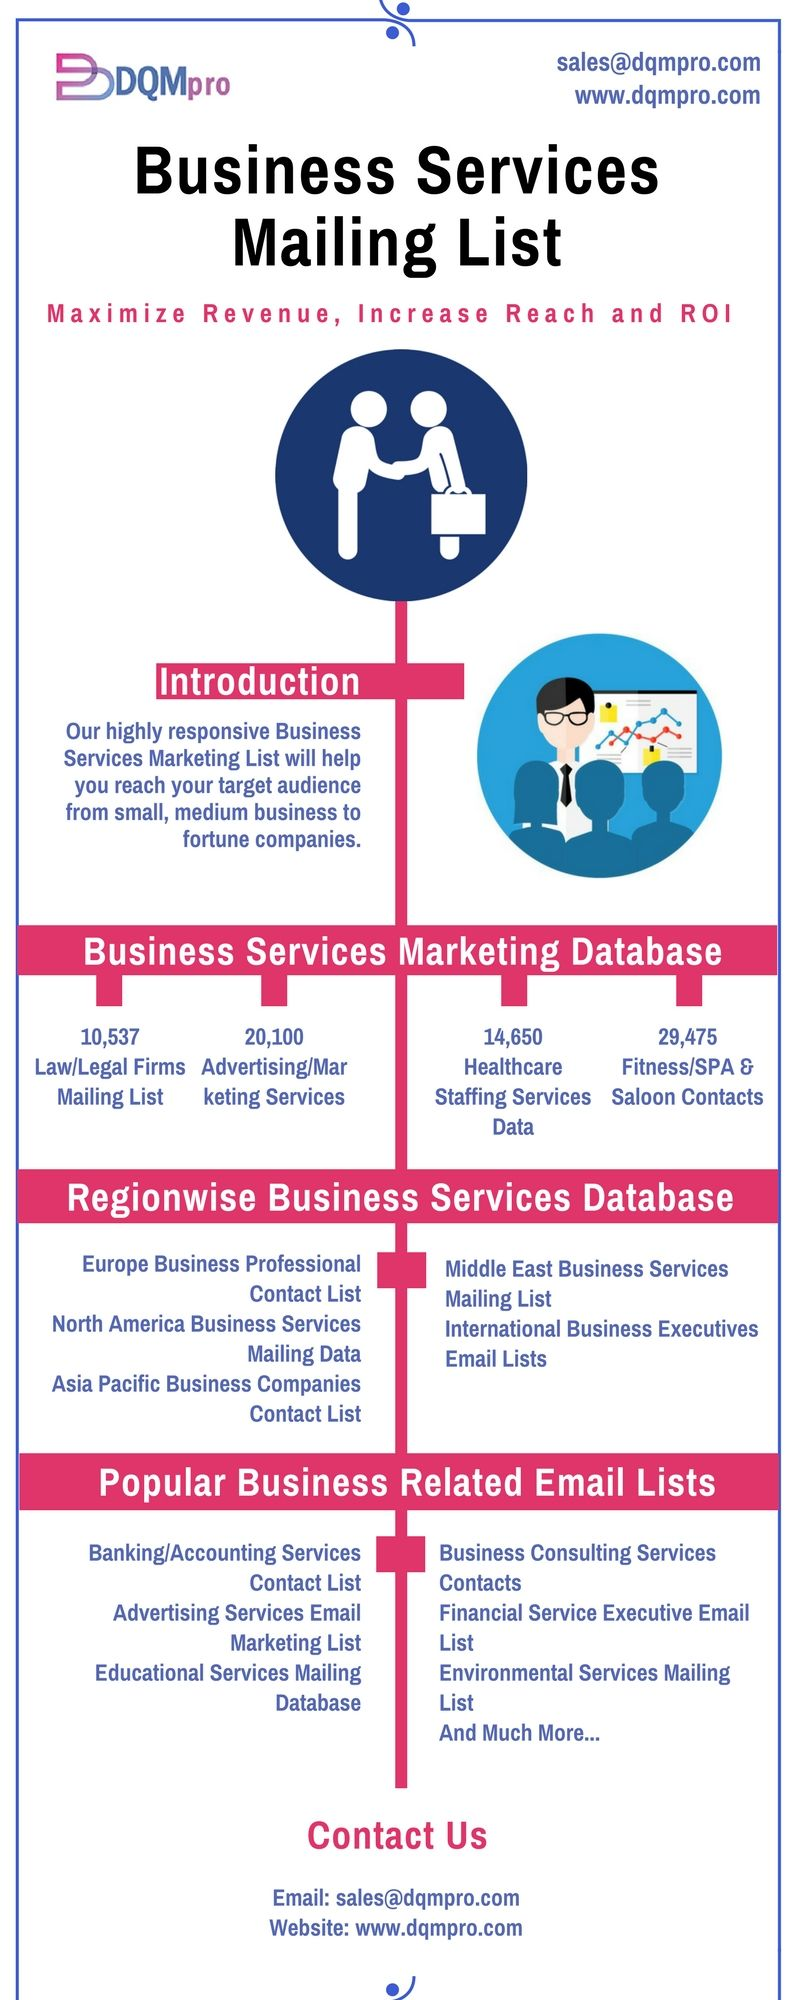 Business Services Mailing List Business Services Marketing